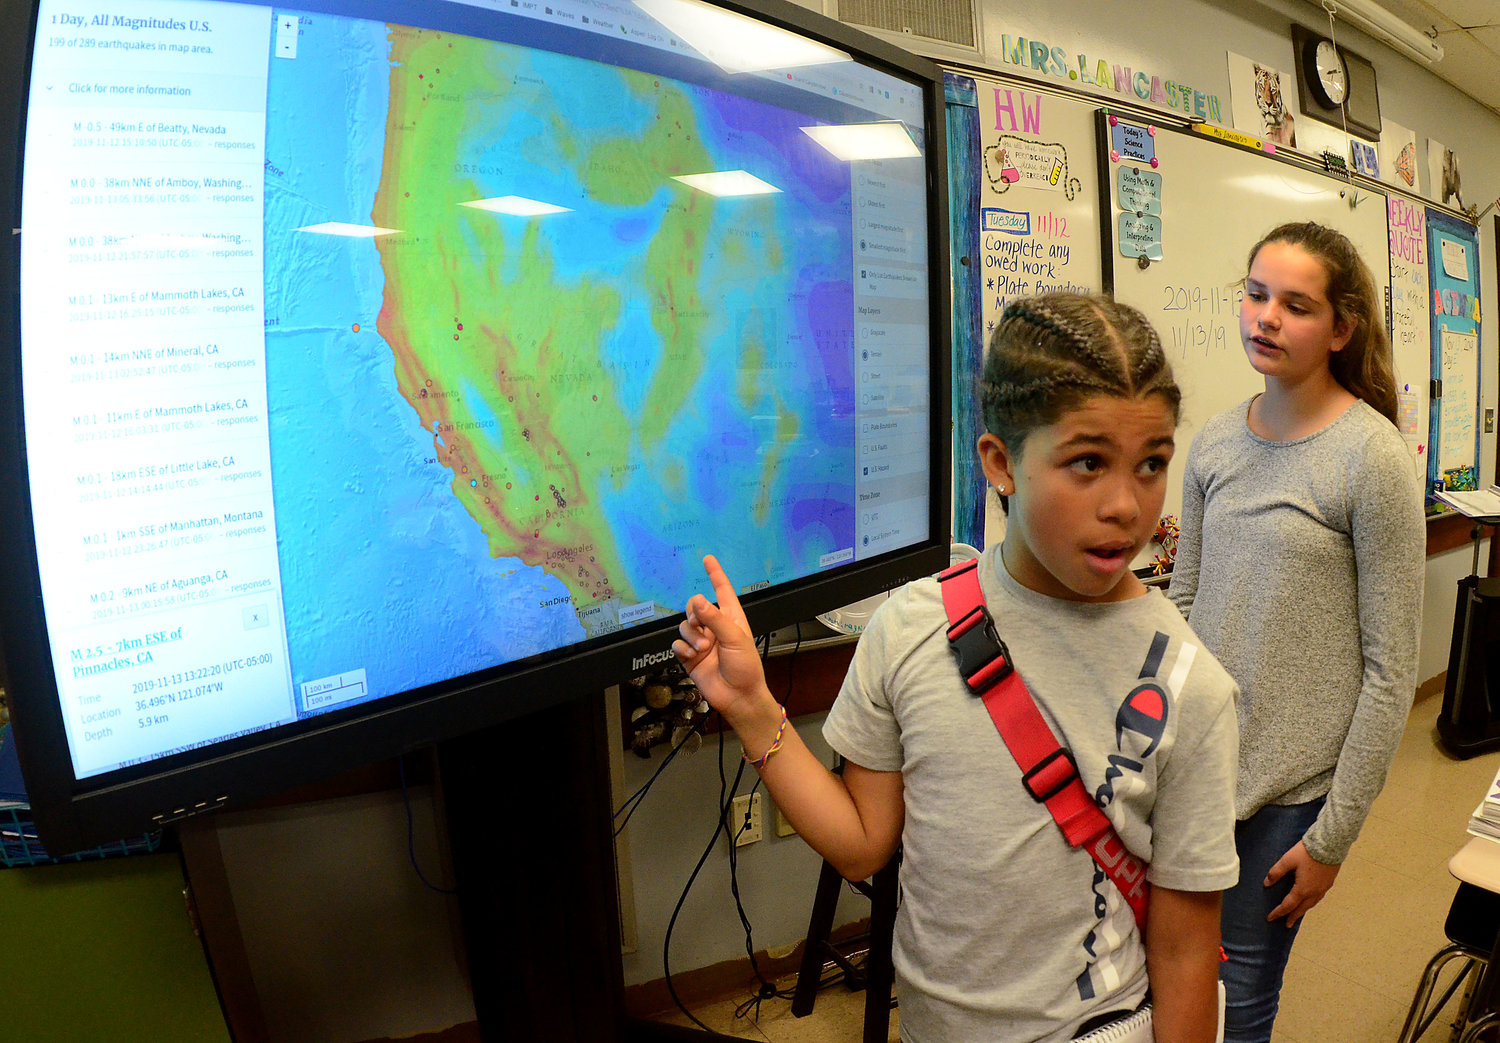 Portsmouth Middle School six-graders Carmine Prestipino (left) and Mia Ruggieri work on a geography lesson using a large smart screen.